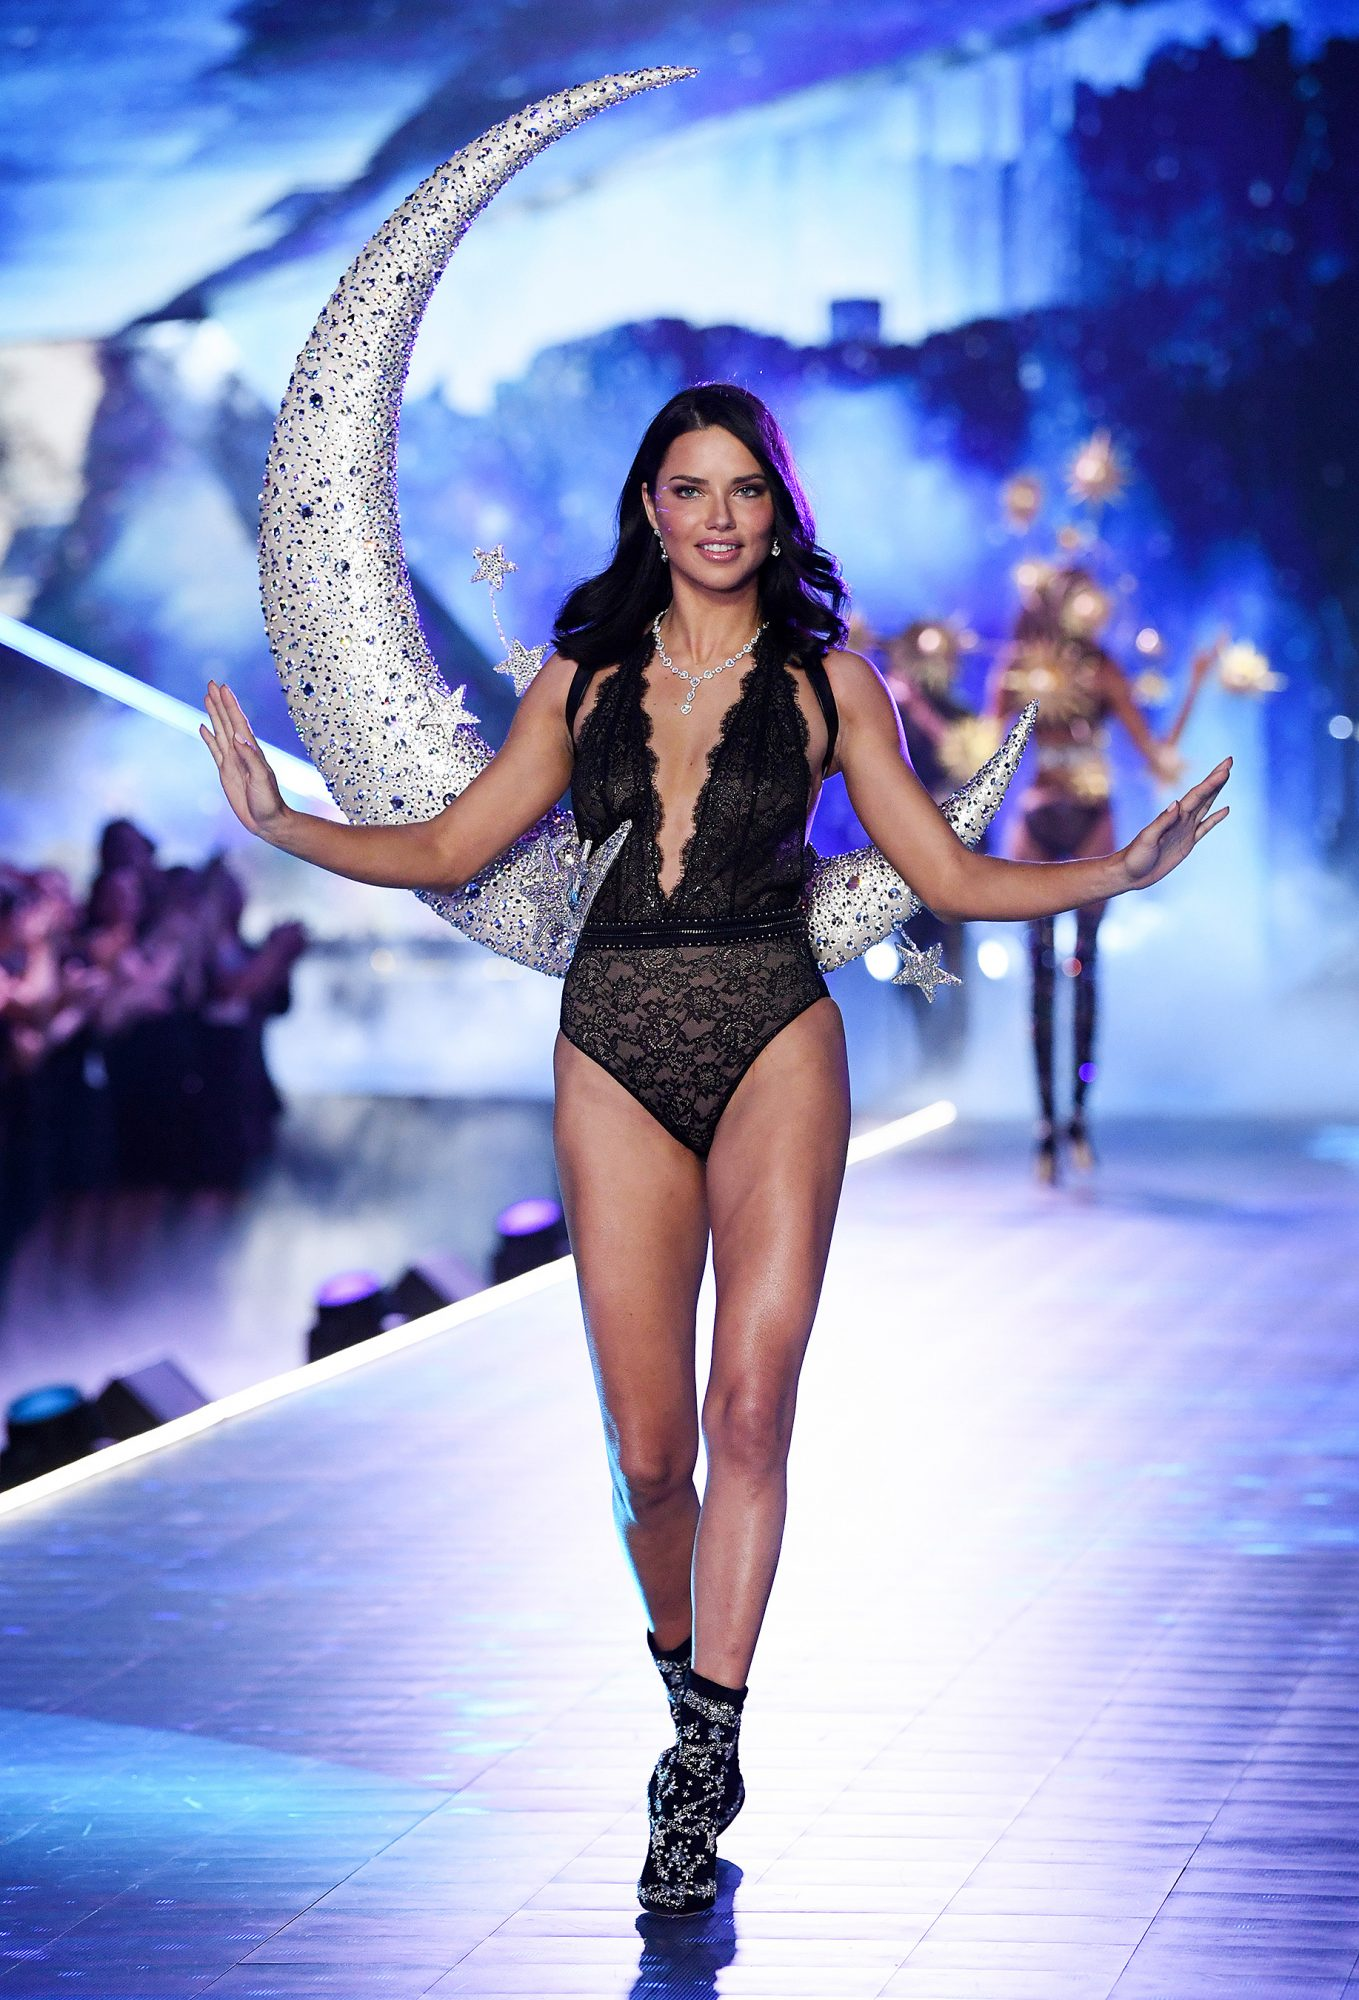 Adriana Lima on the catwalk